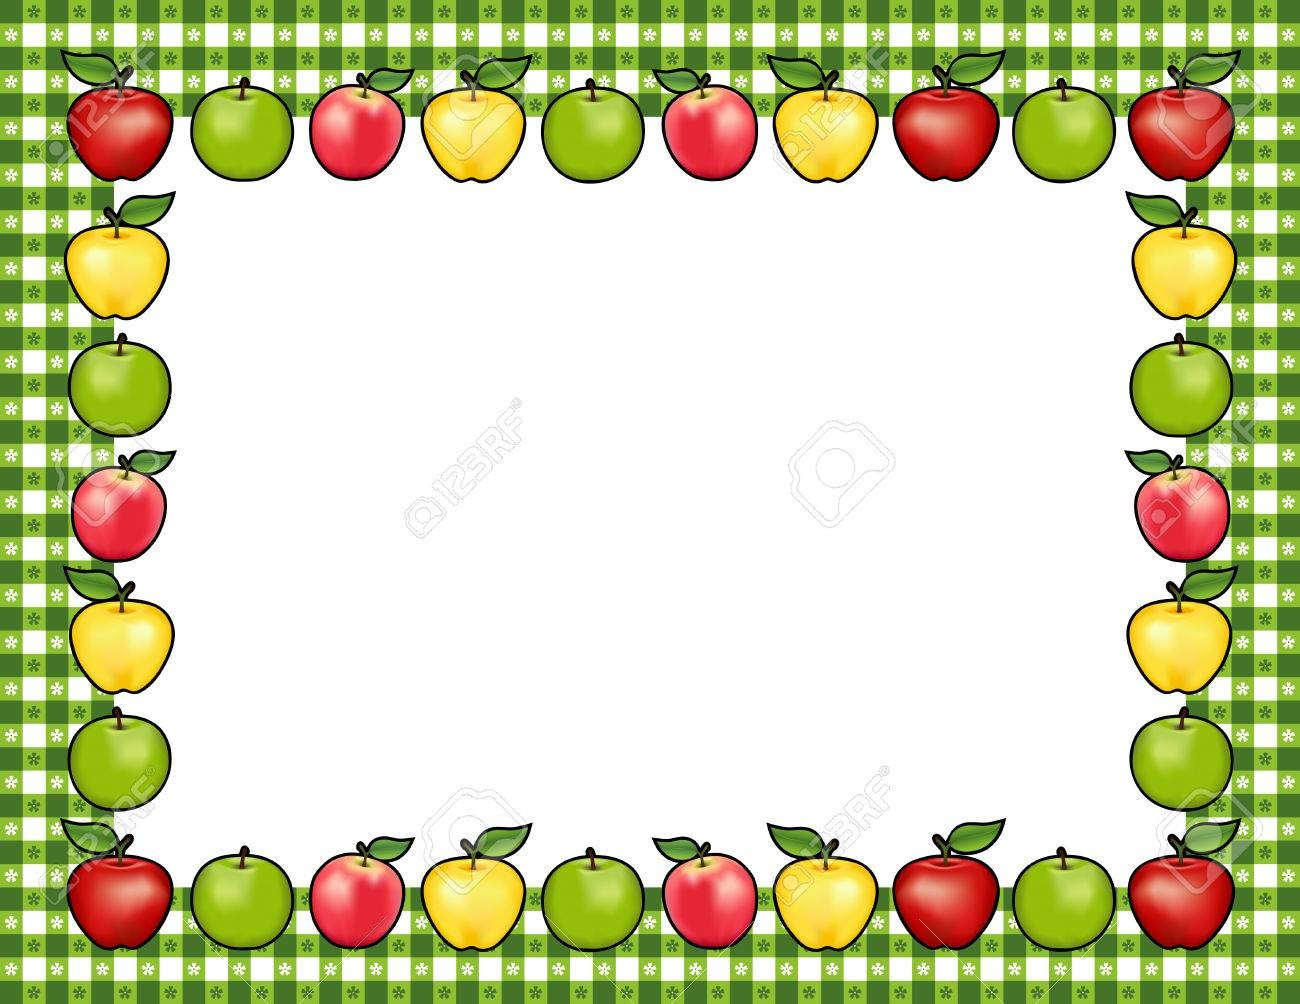 Within Apple Border Clipart 60895544 Frame Place Mat With Red And.